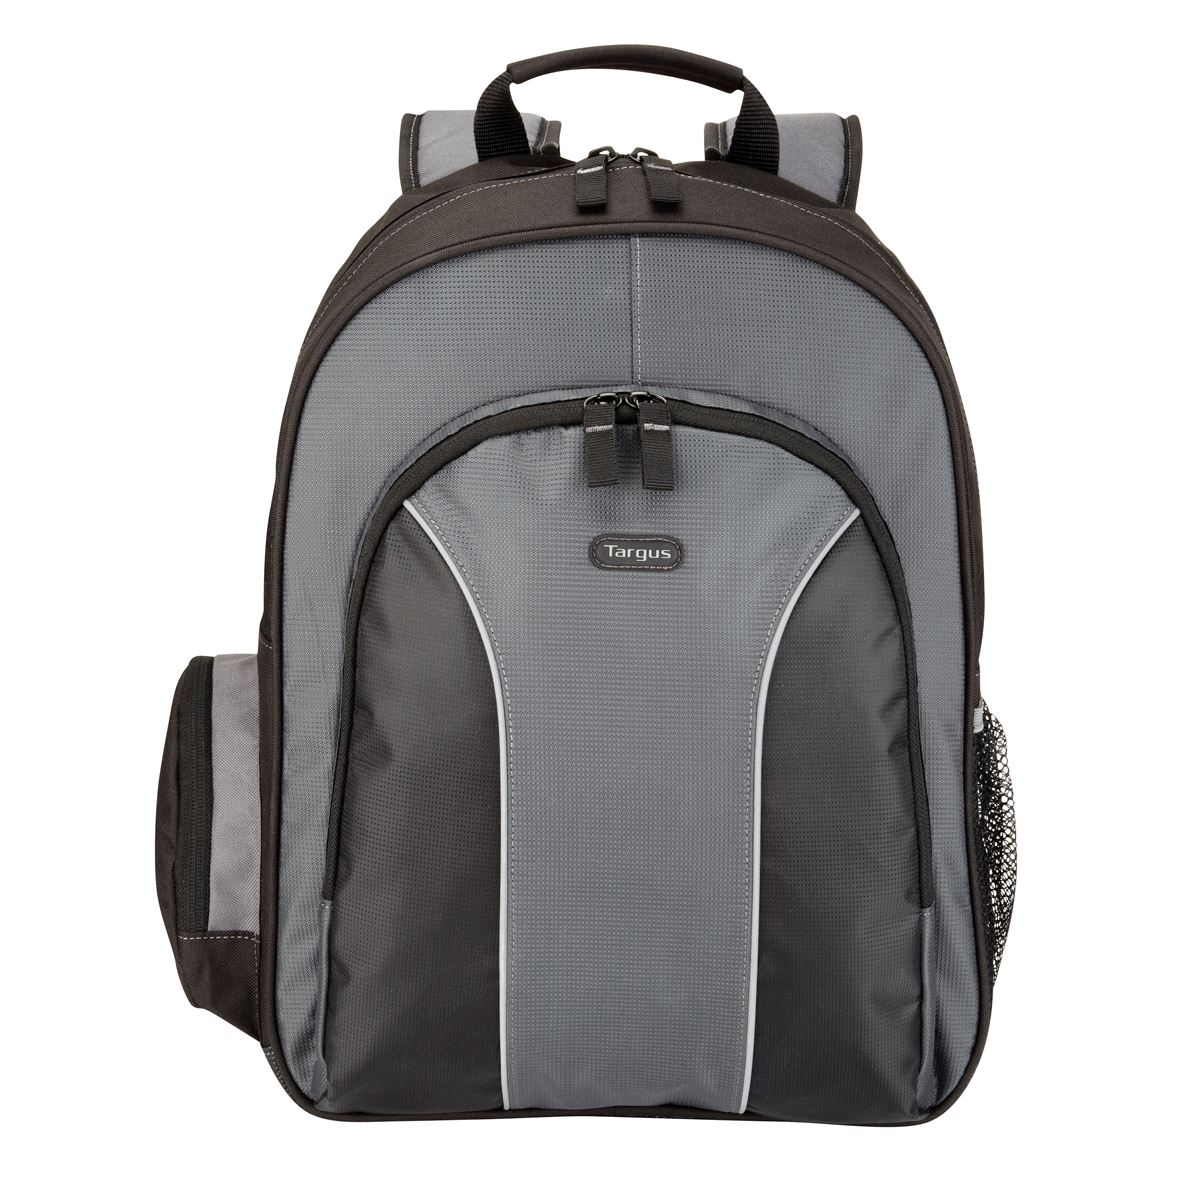 TARGUS TSB023EU BACKPACK BLACK & GREY